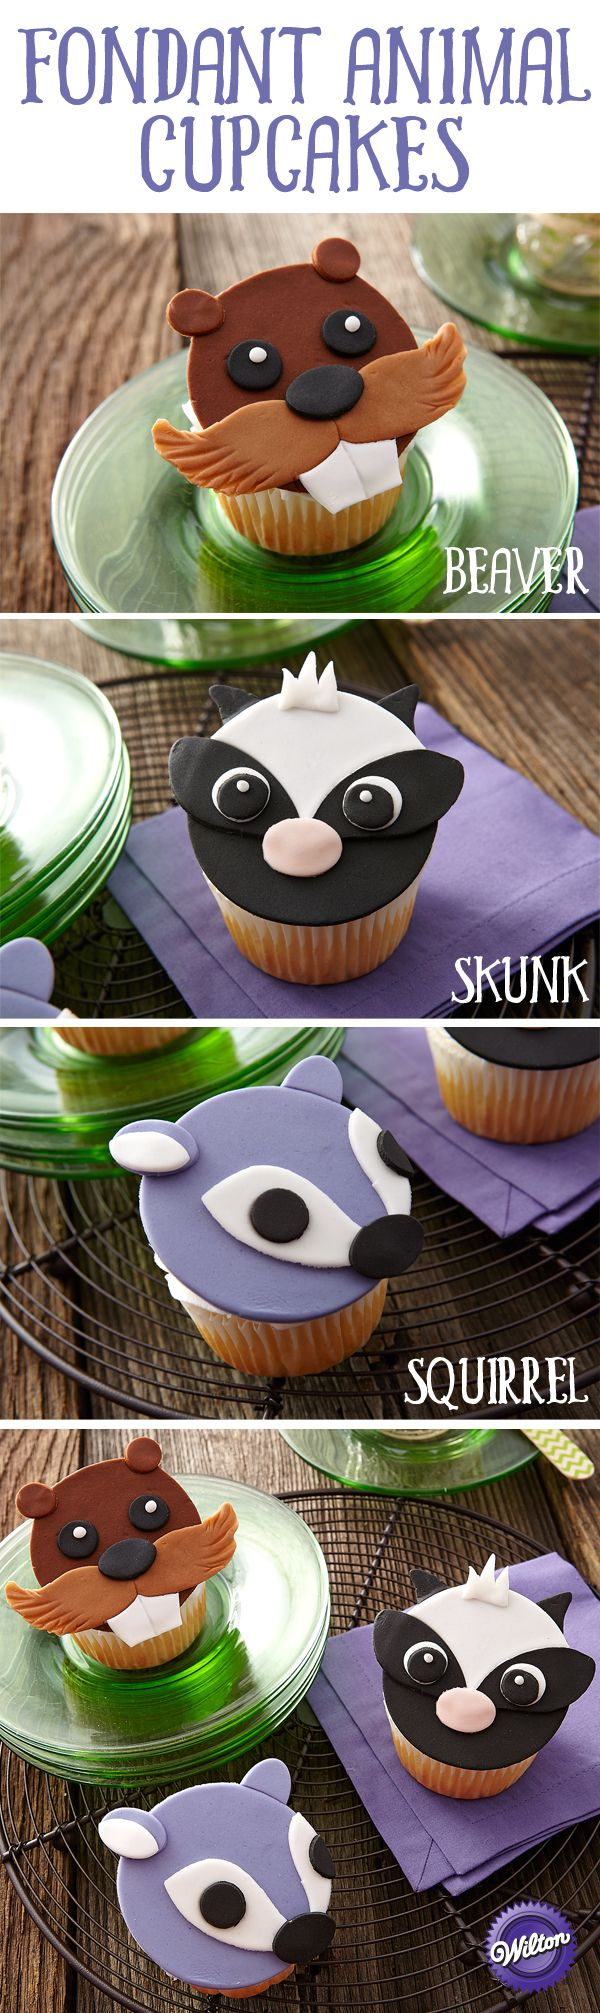 Who can resist these friendly faces? Meet our forest friends: Beaver, Skunk and Squirrel! It's easy to bring out their personalities using Decorator Preferred Fondant and Leaf and Oval Fondant Double Cut-Outs Sets to cut the simple shapes for these Forest Friends Fondant Cupcakes.